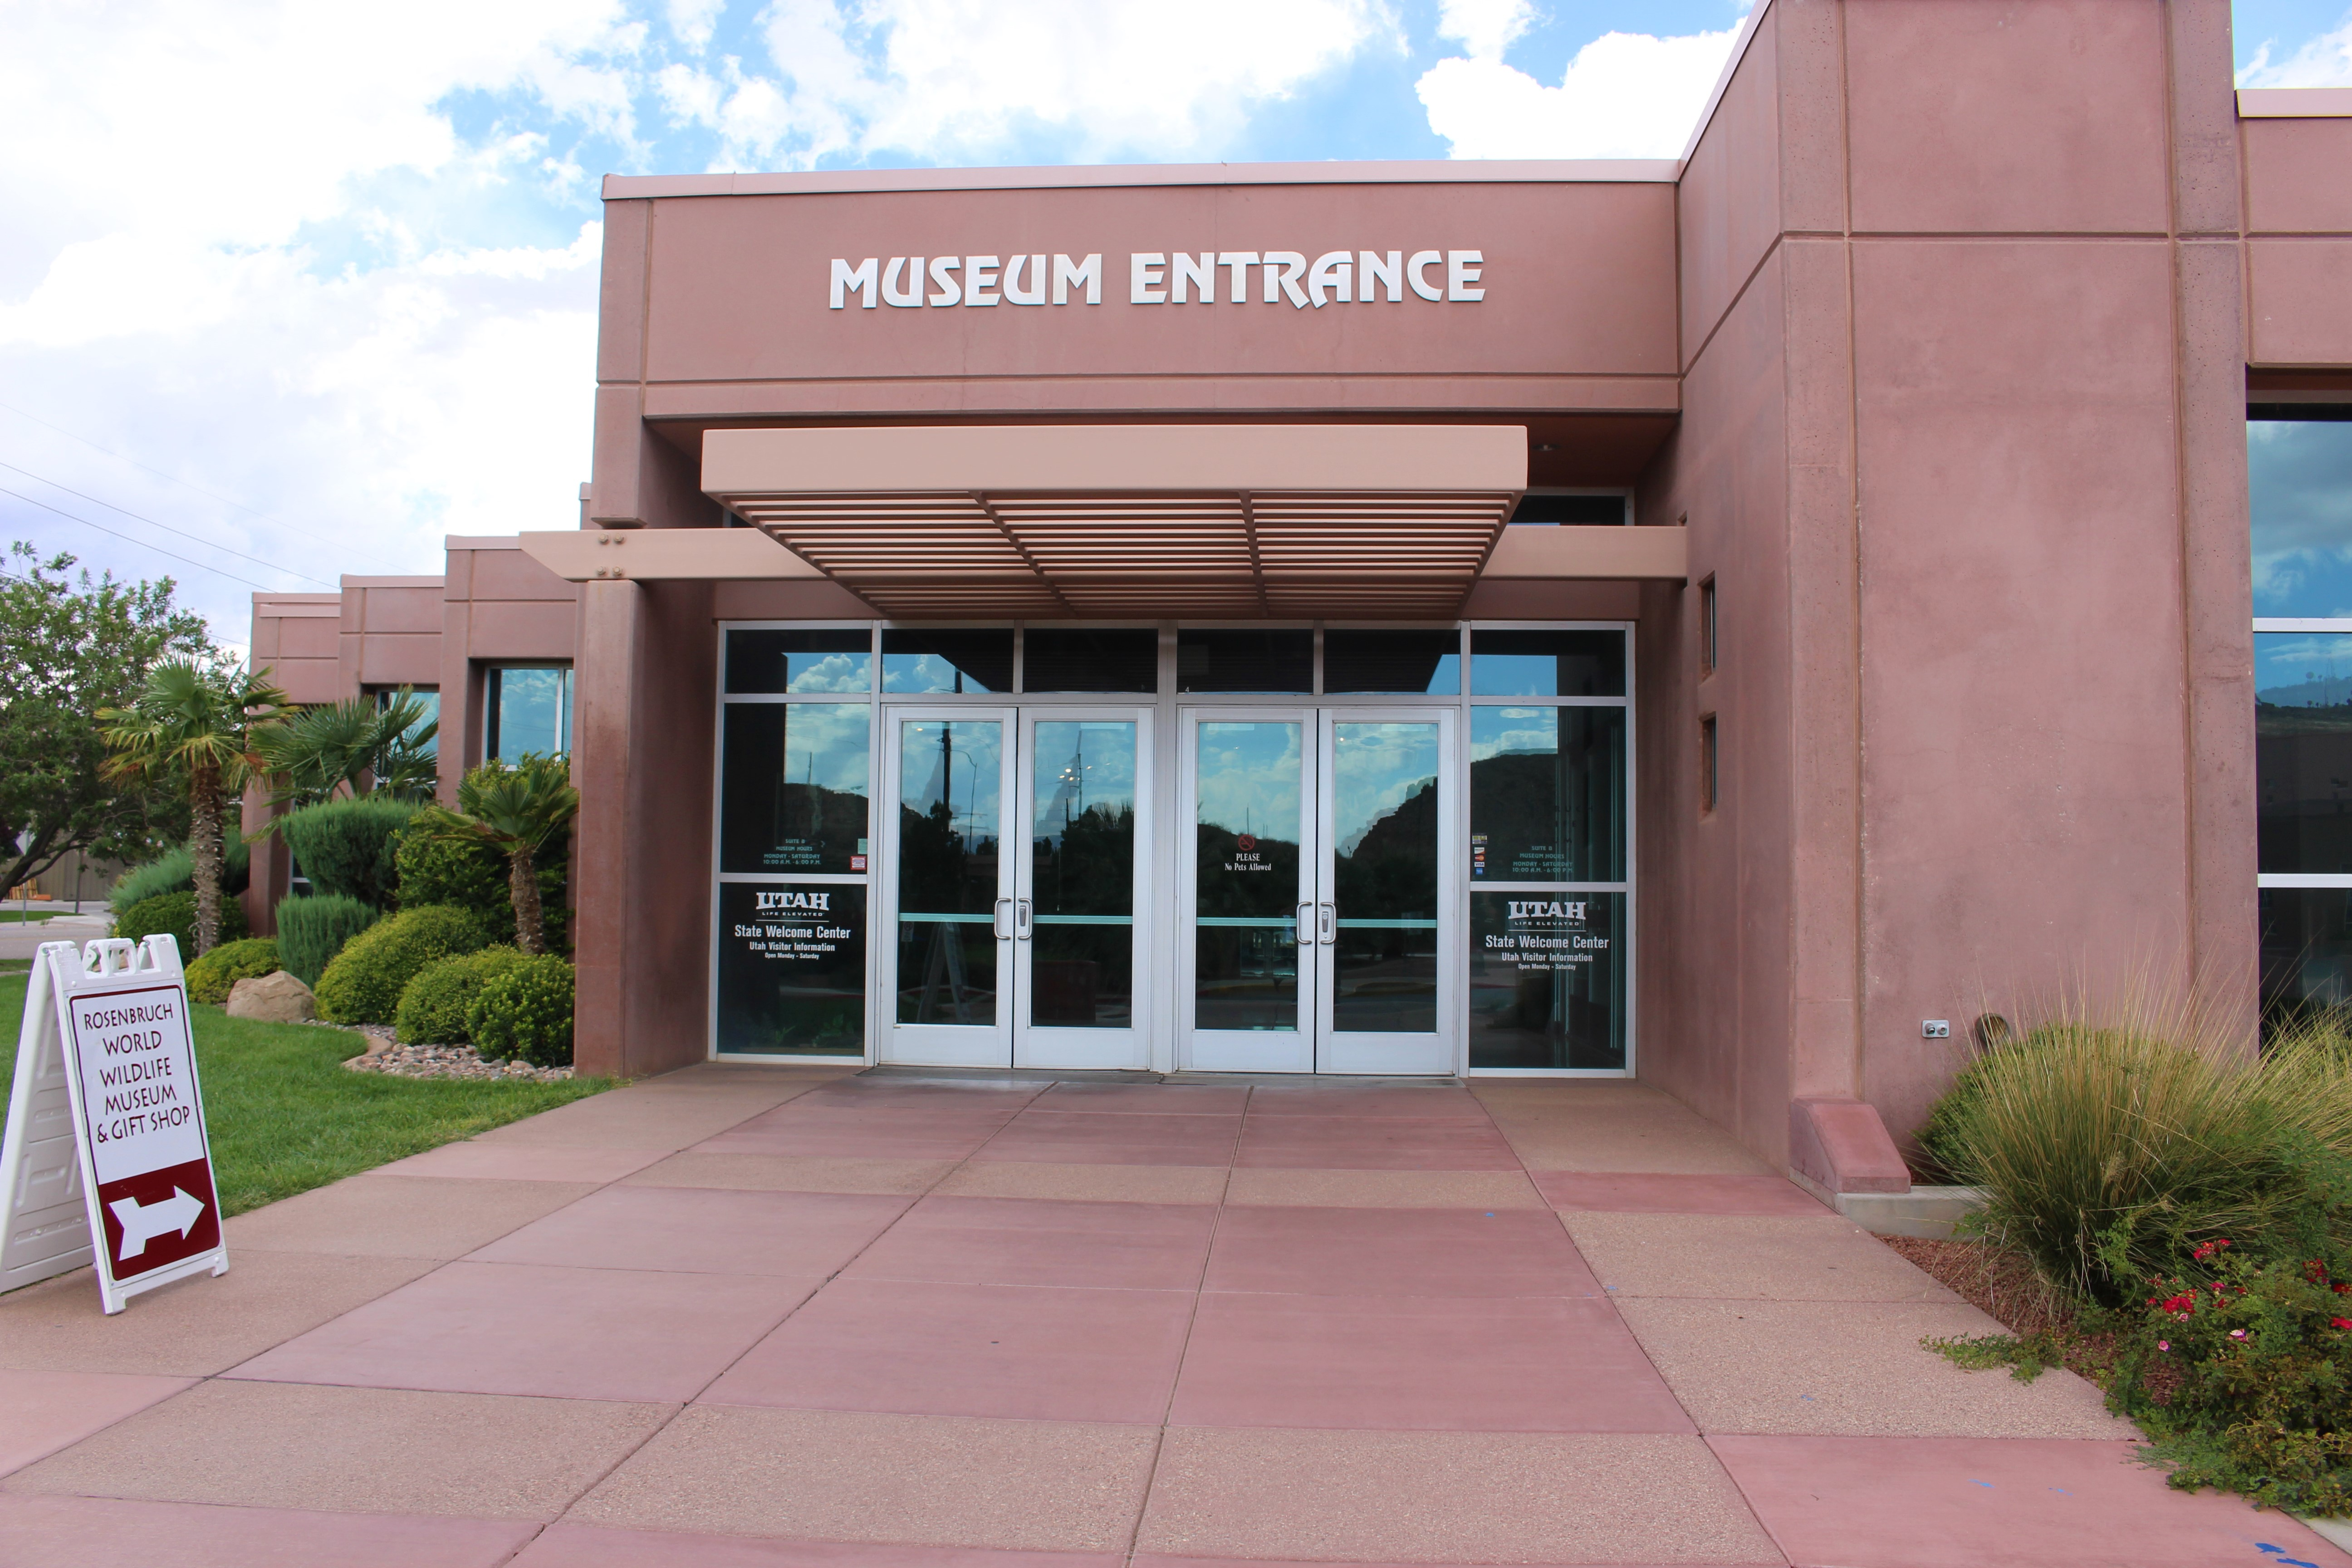 The Dixie Convention Center St. George where the Utah Visitor Information Center was temporarily placed in 2008, St. George, Utah, Sept. 22, 2016 | Photo by Cody Blowers, St. George News